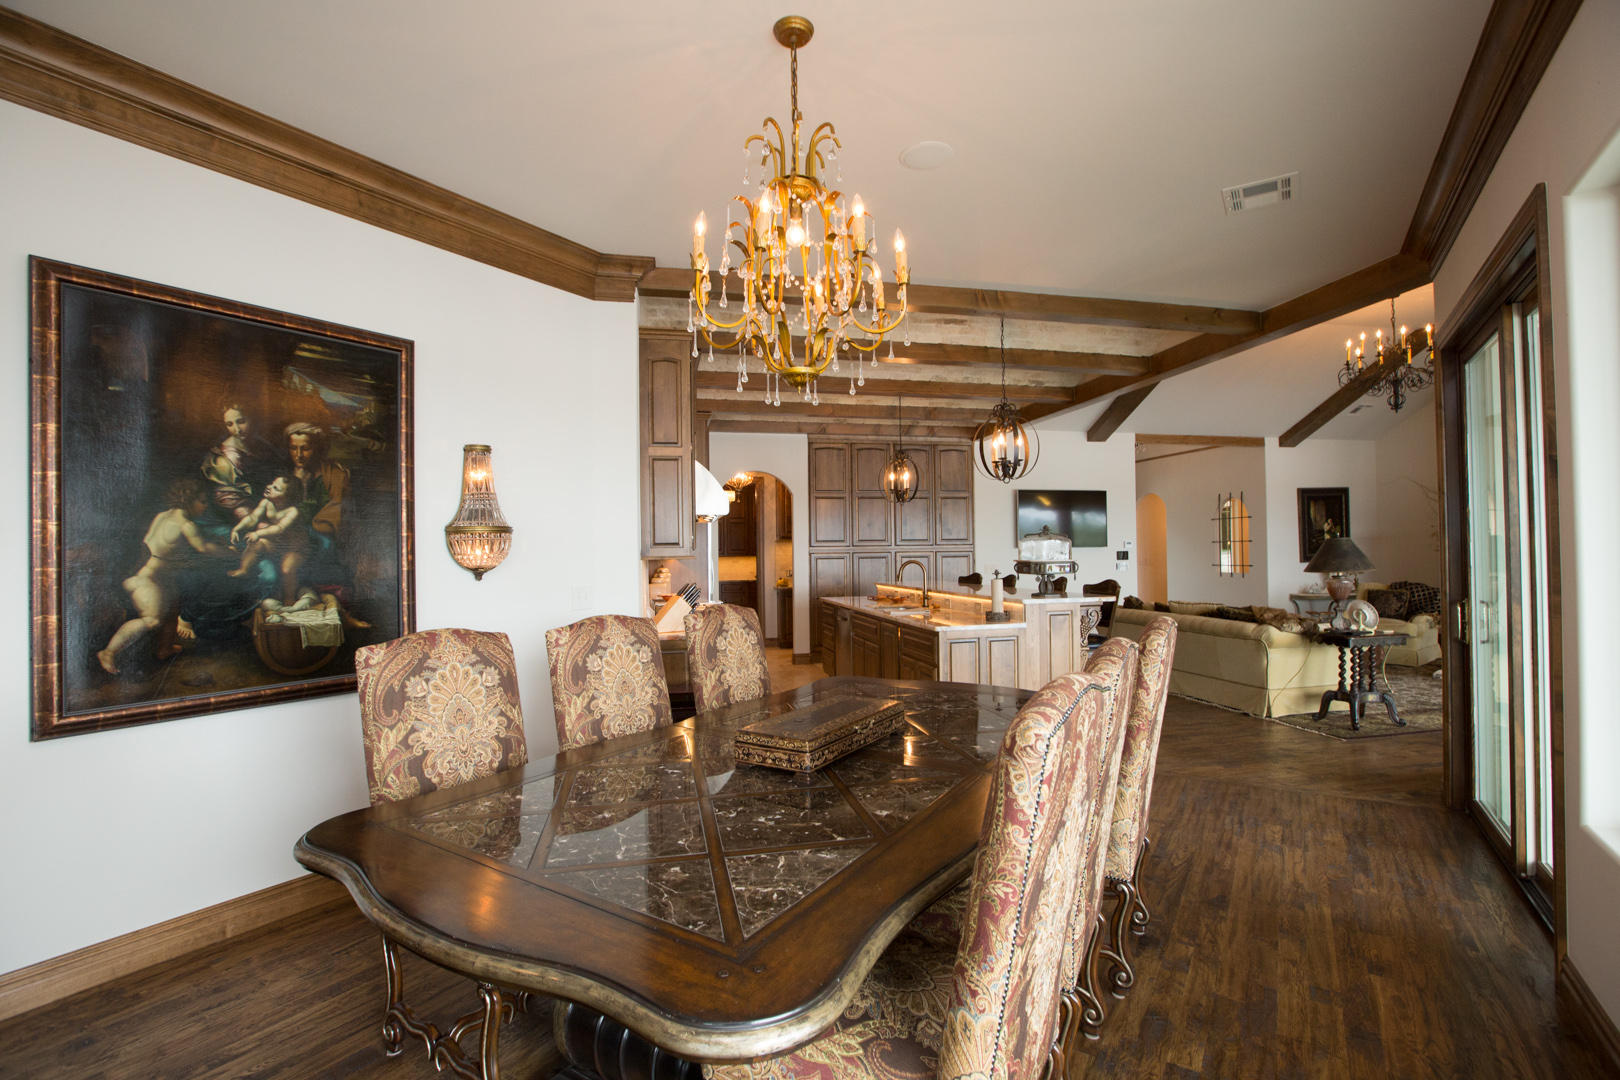 Dining, Kitchen, And Living